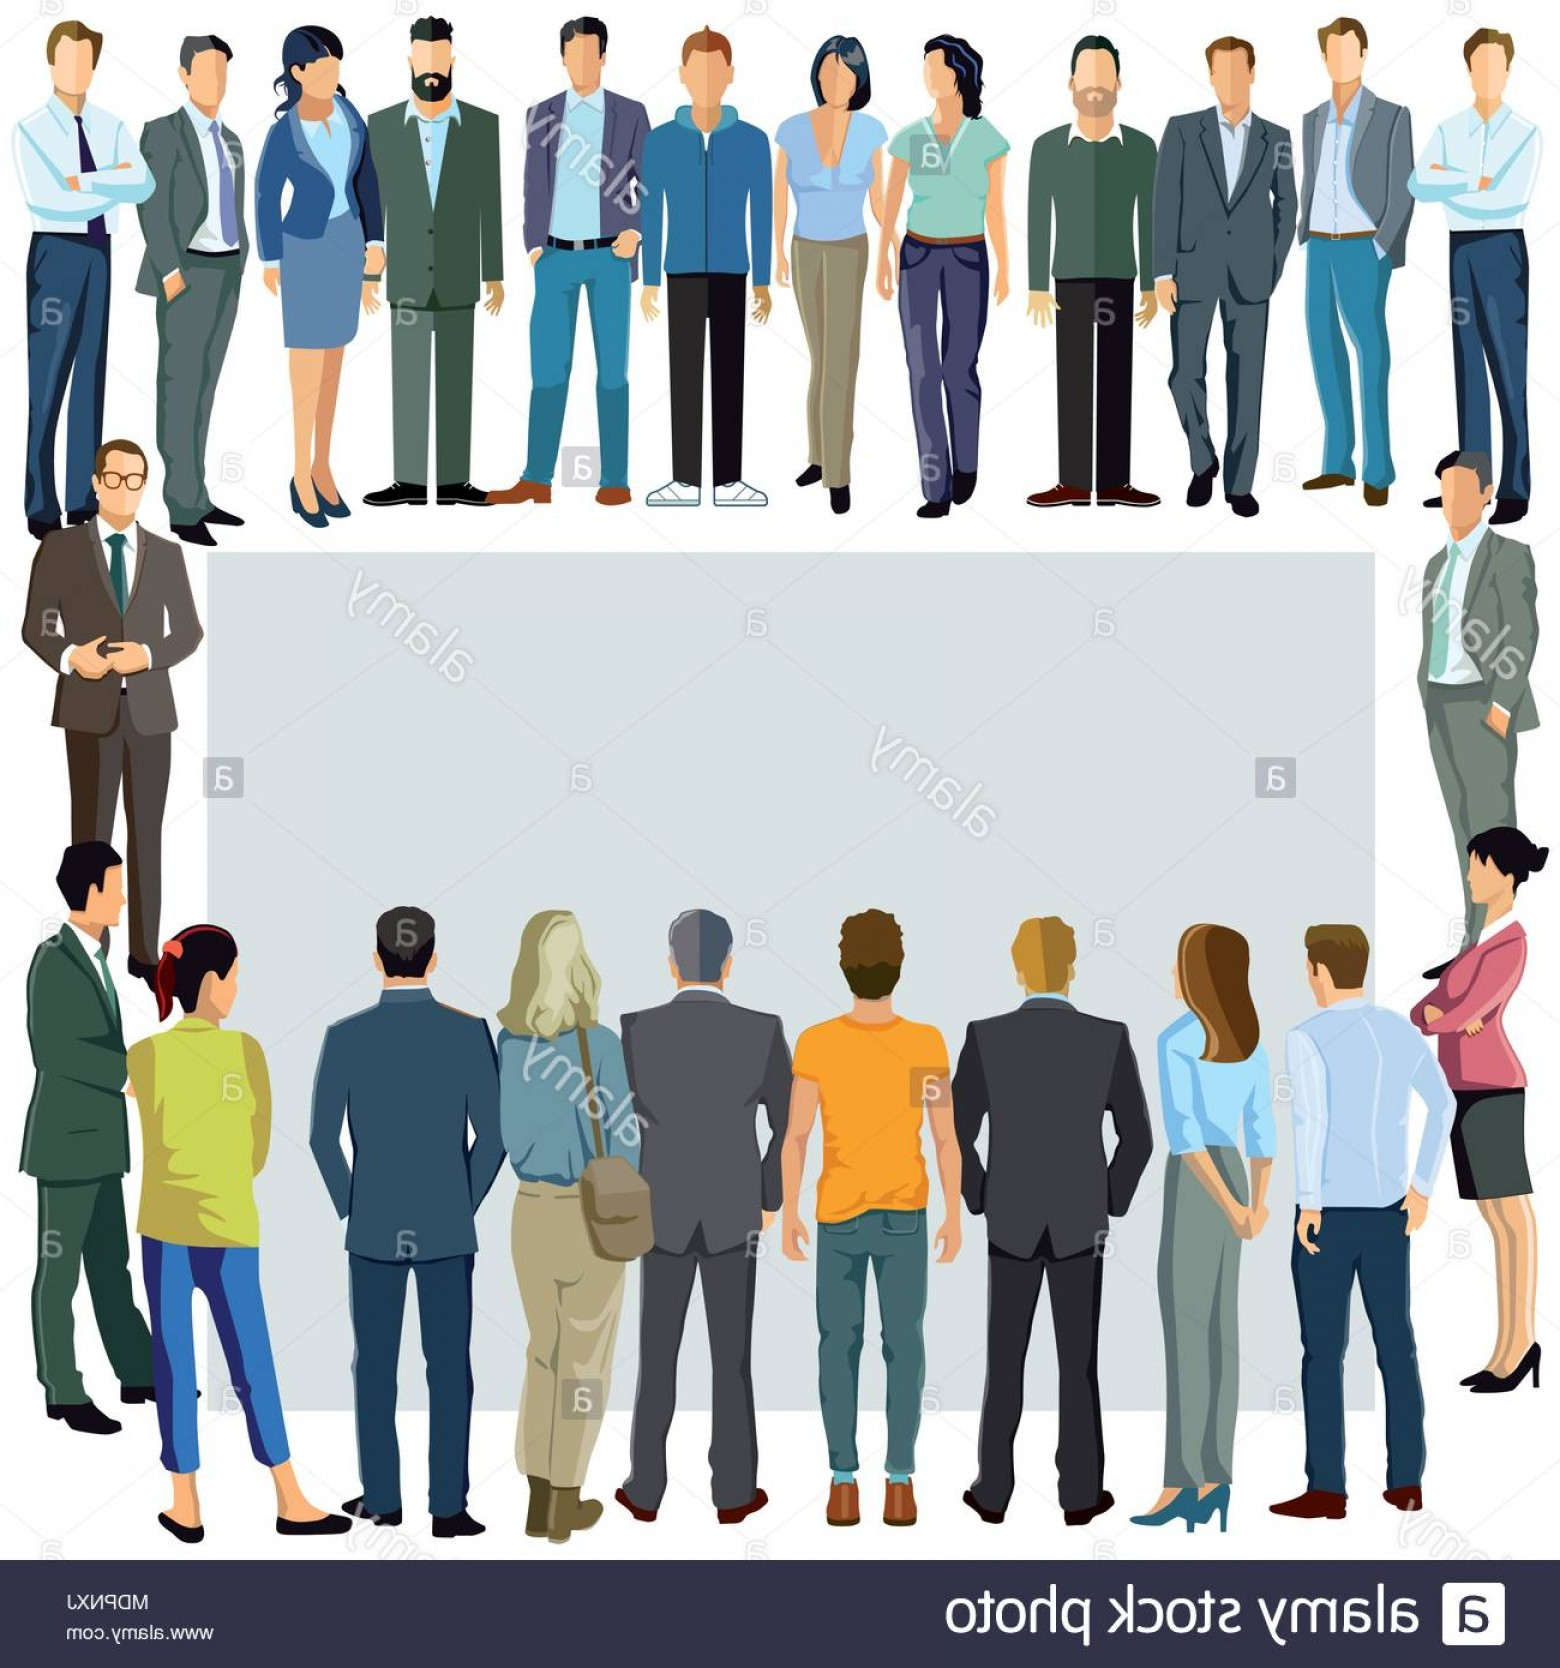 People Standing Vector: A Group Of People Stand Together Image